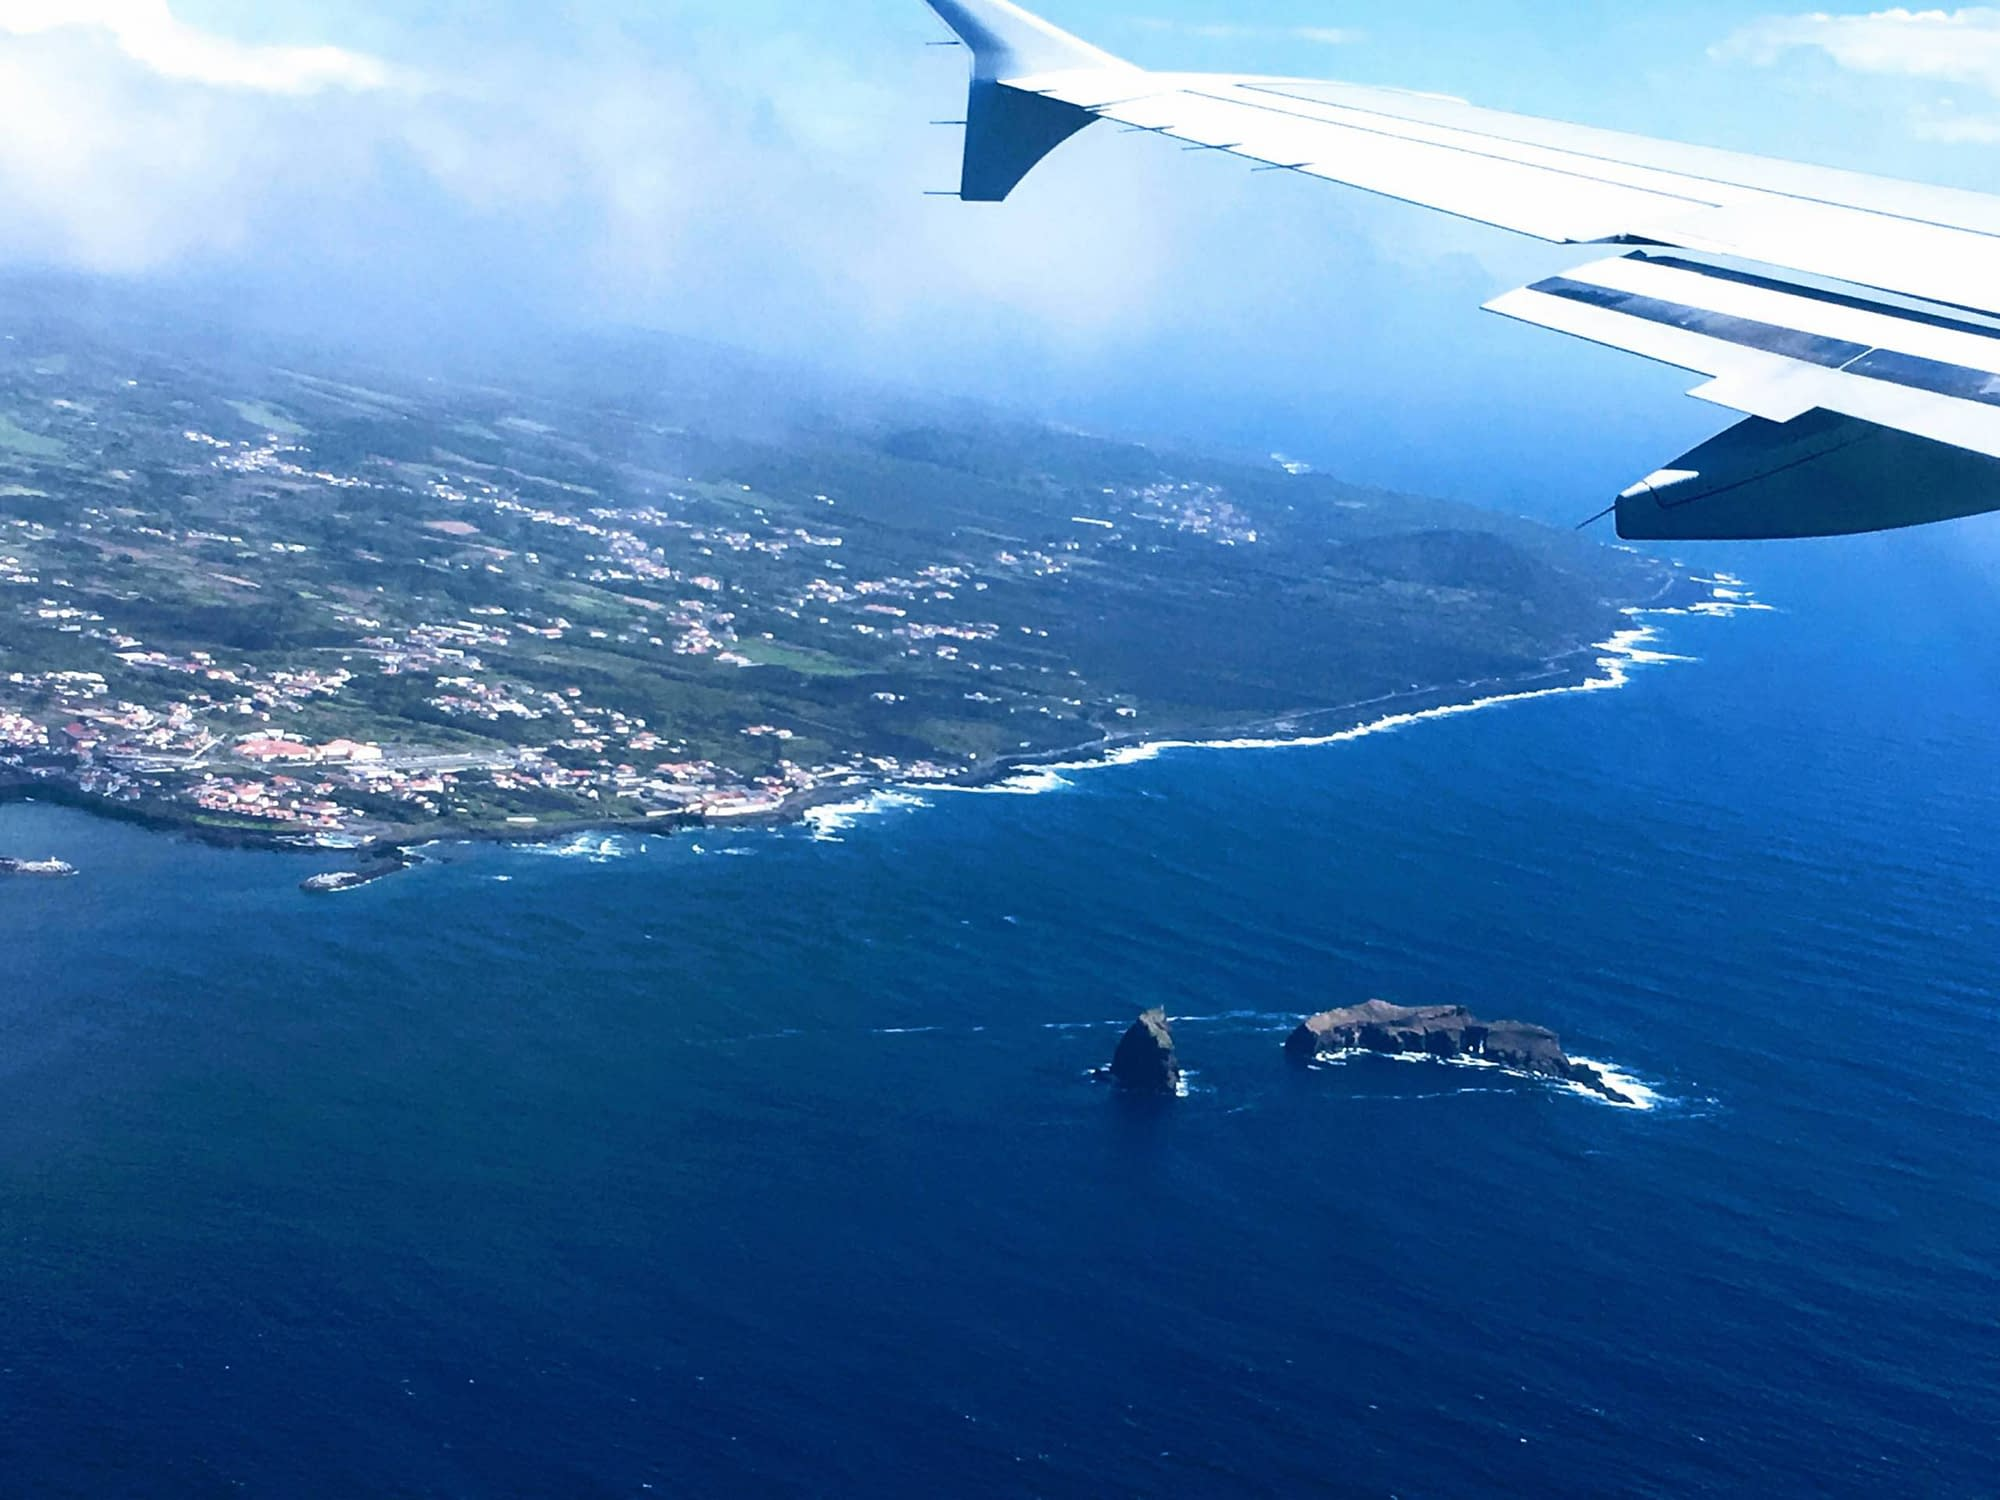 The view of the Azores from the plane